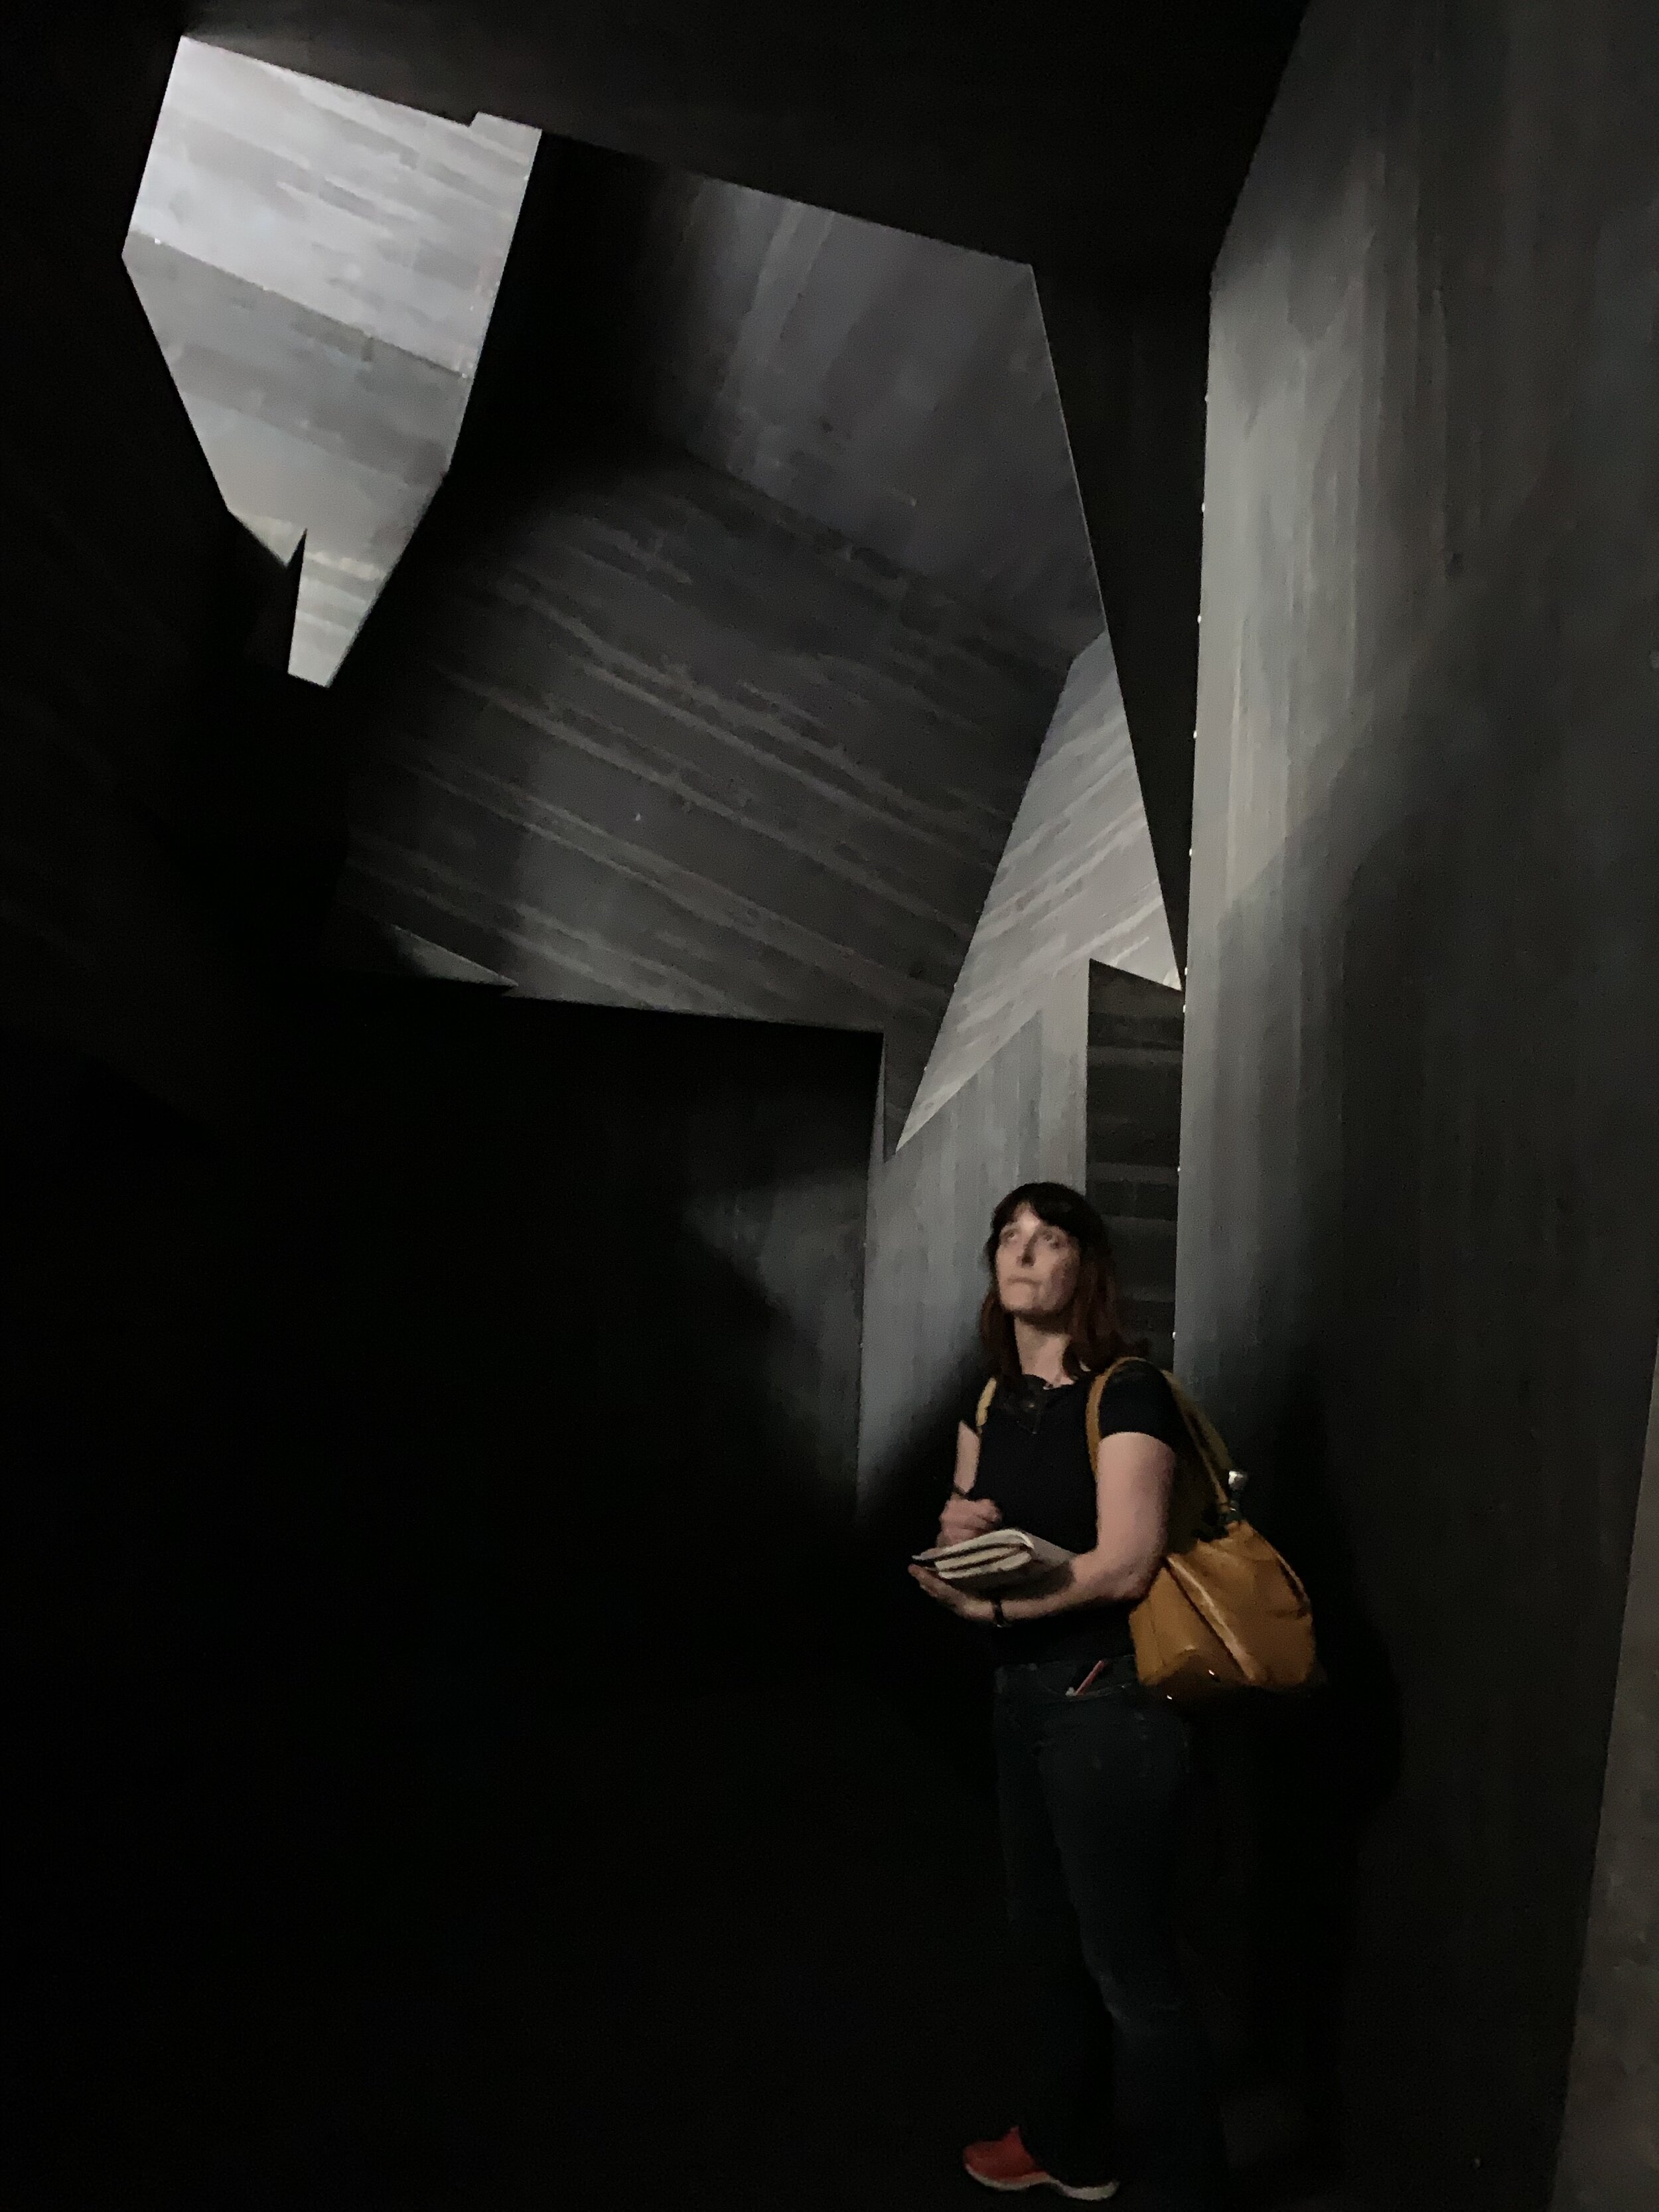 This is what it looks like in the hollow interior (the woman in the picture was drawing the magical interplay of light and shadow on the beautiful geometric sections of the sculpture)